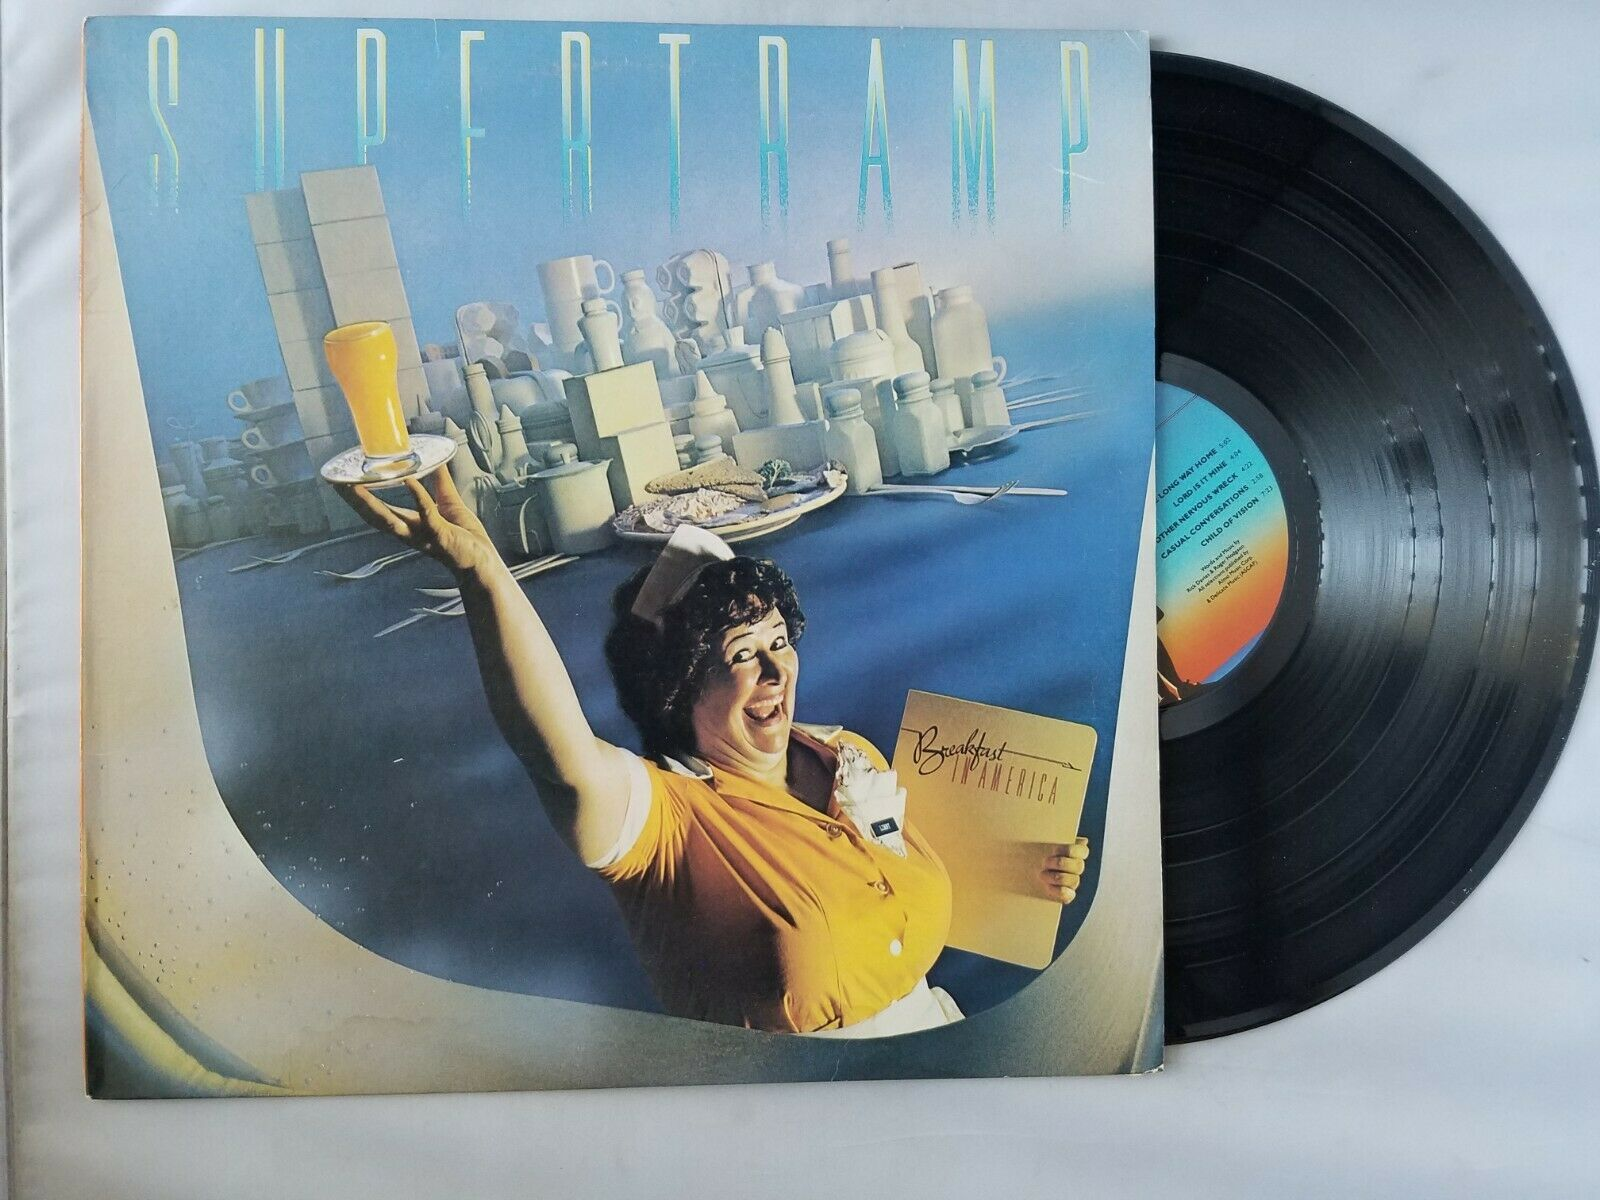 Supertramp Breakfast In America Disque Vinyle Vintage 1979 A & M Records